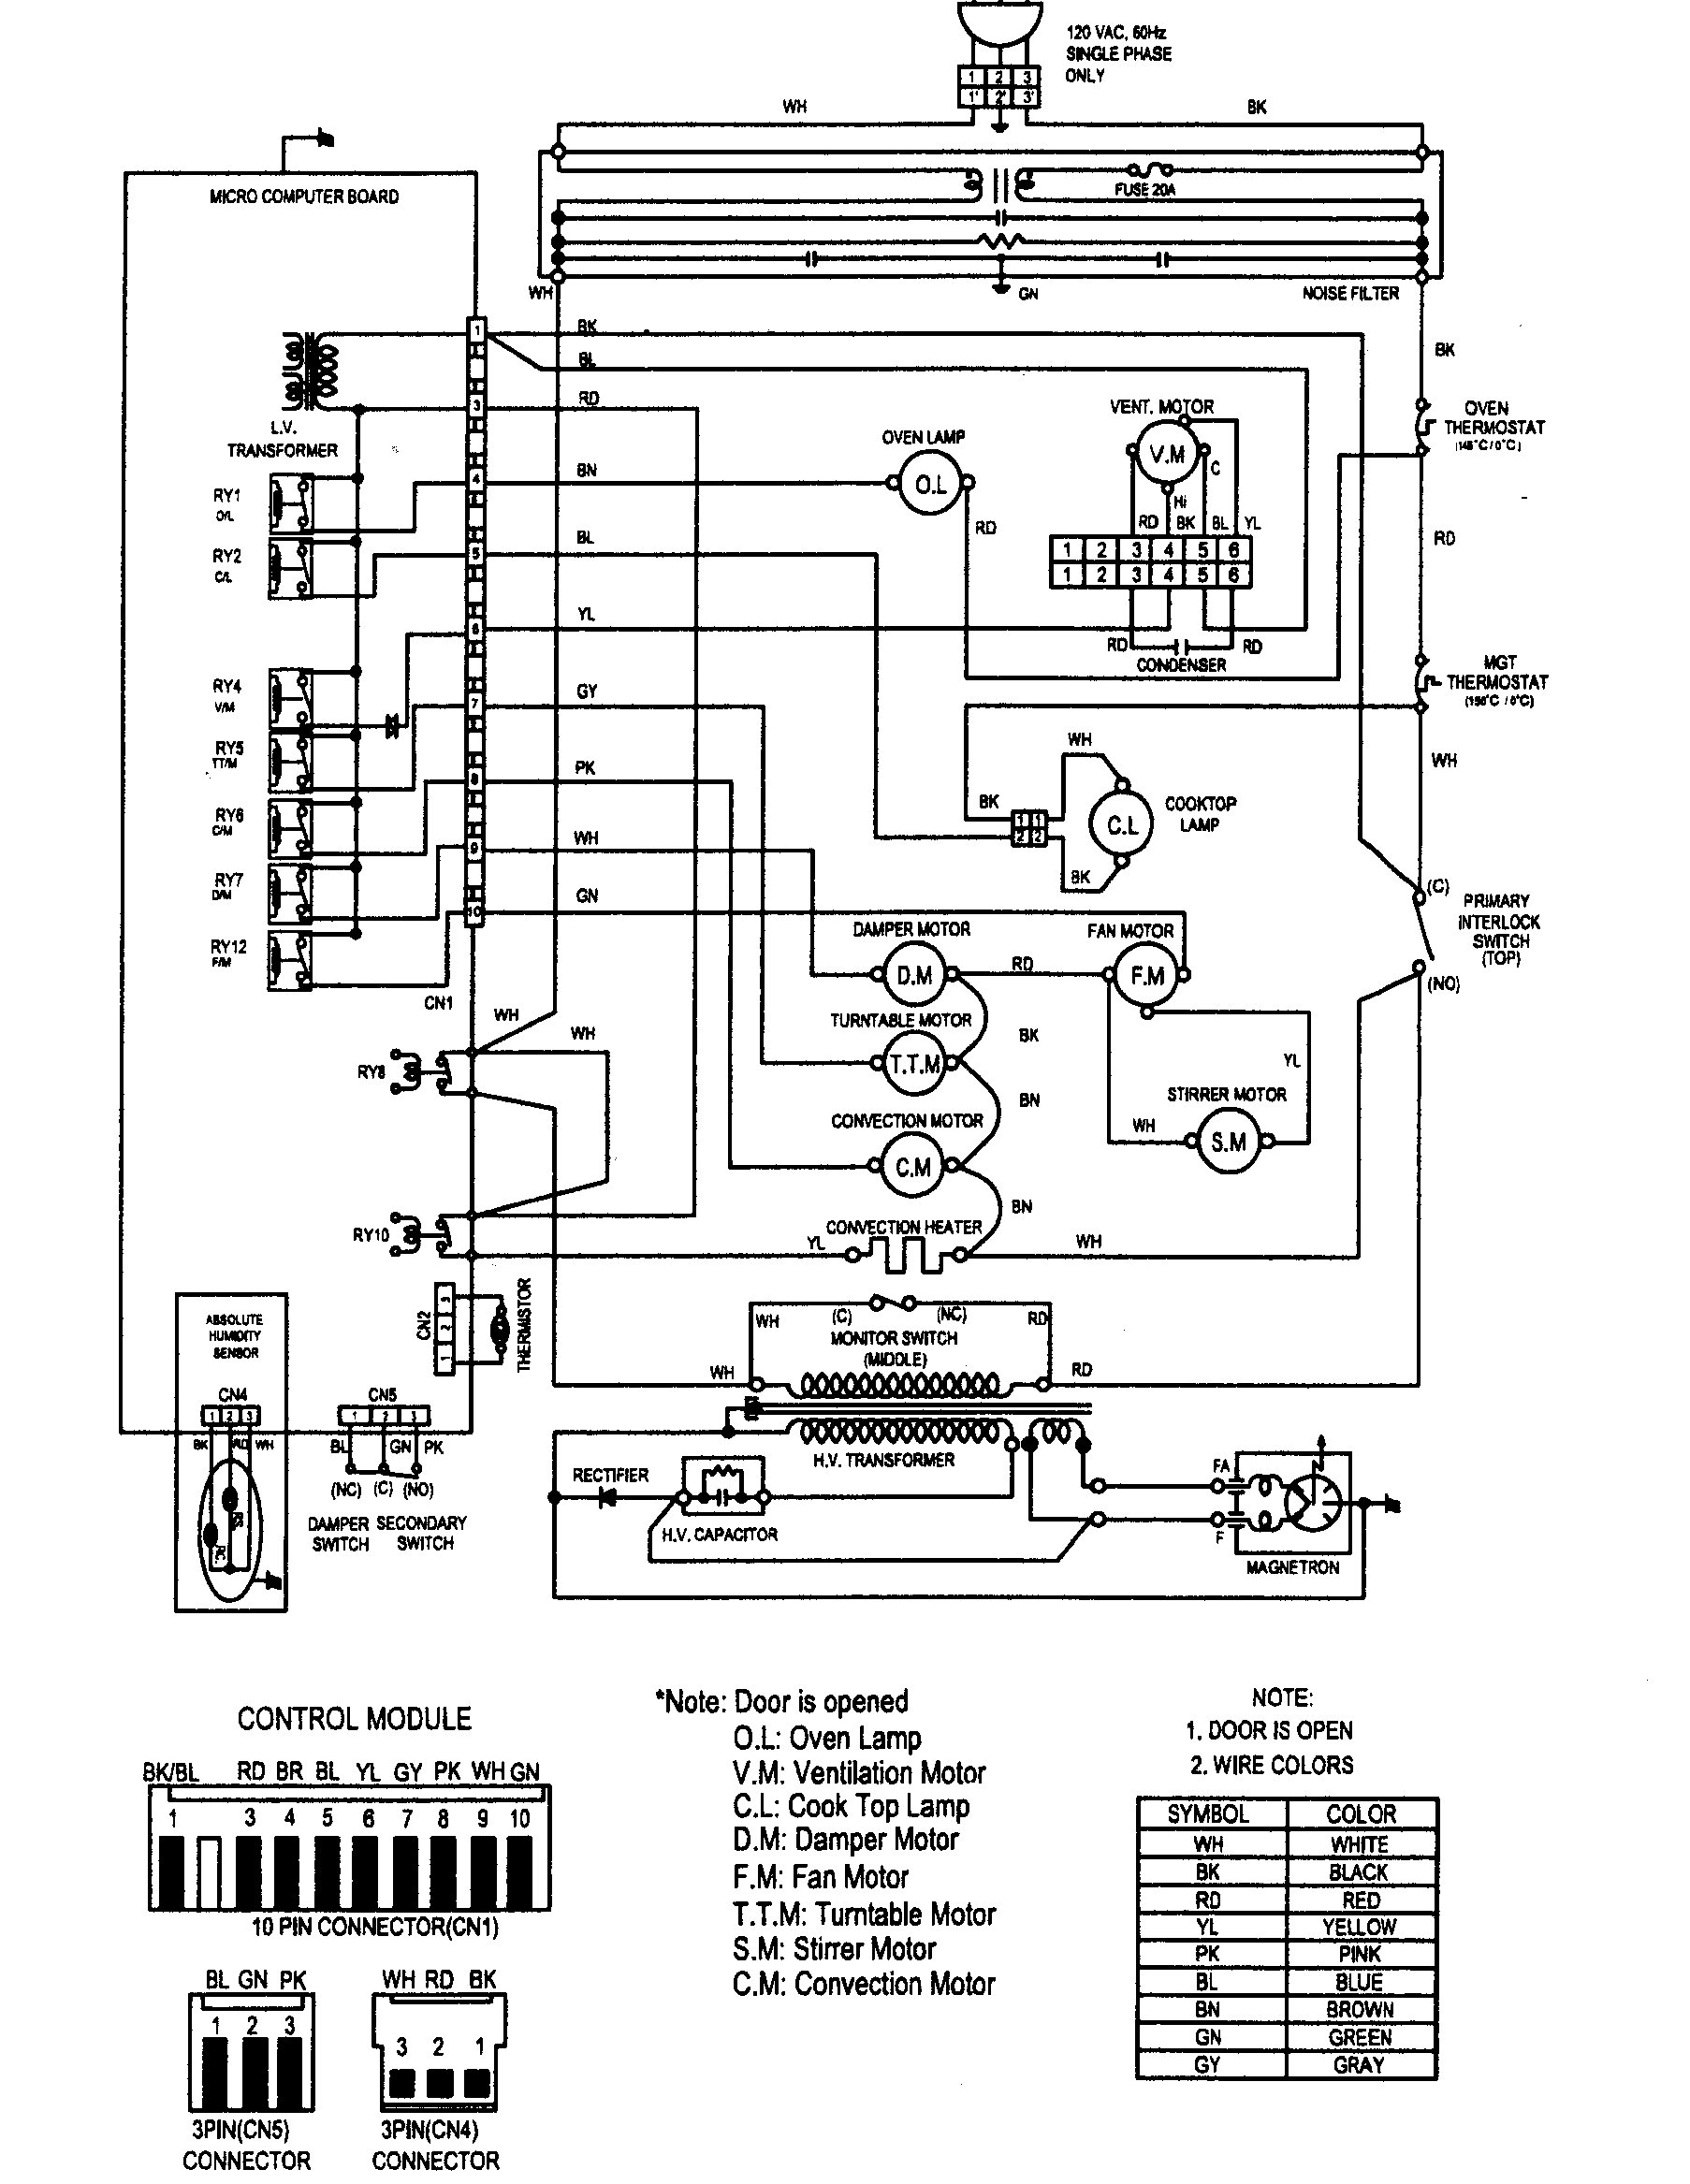 Emg Hsh Wiring Diagram